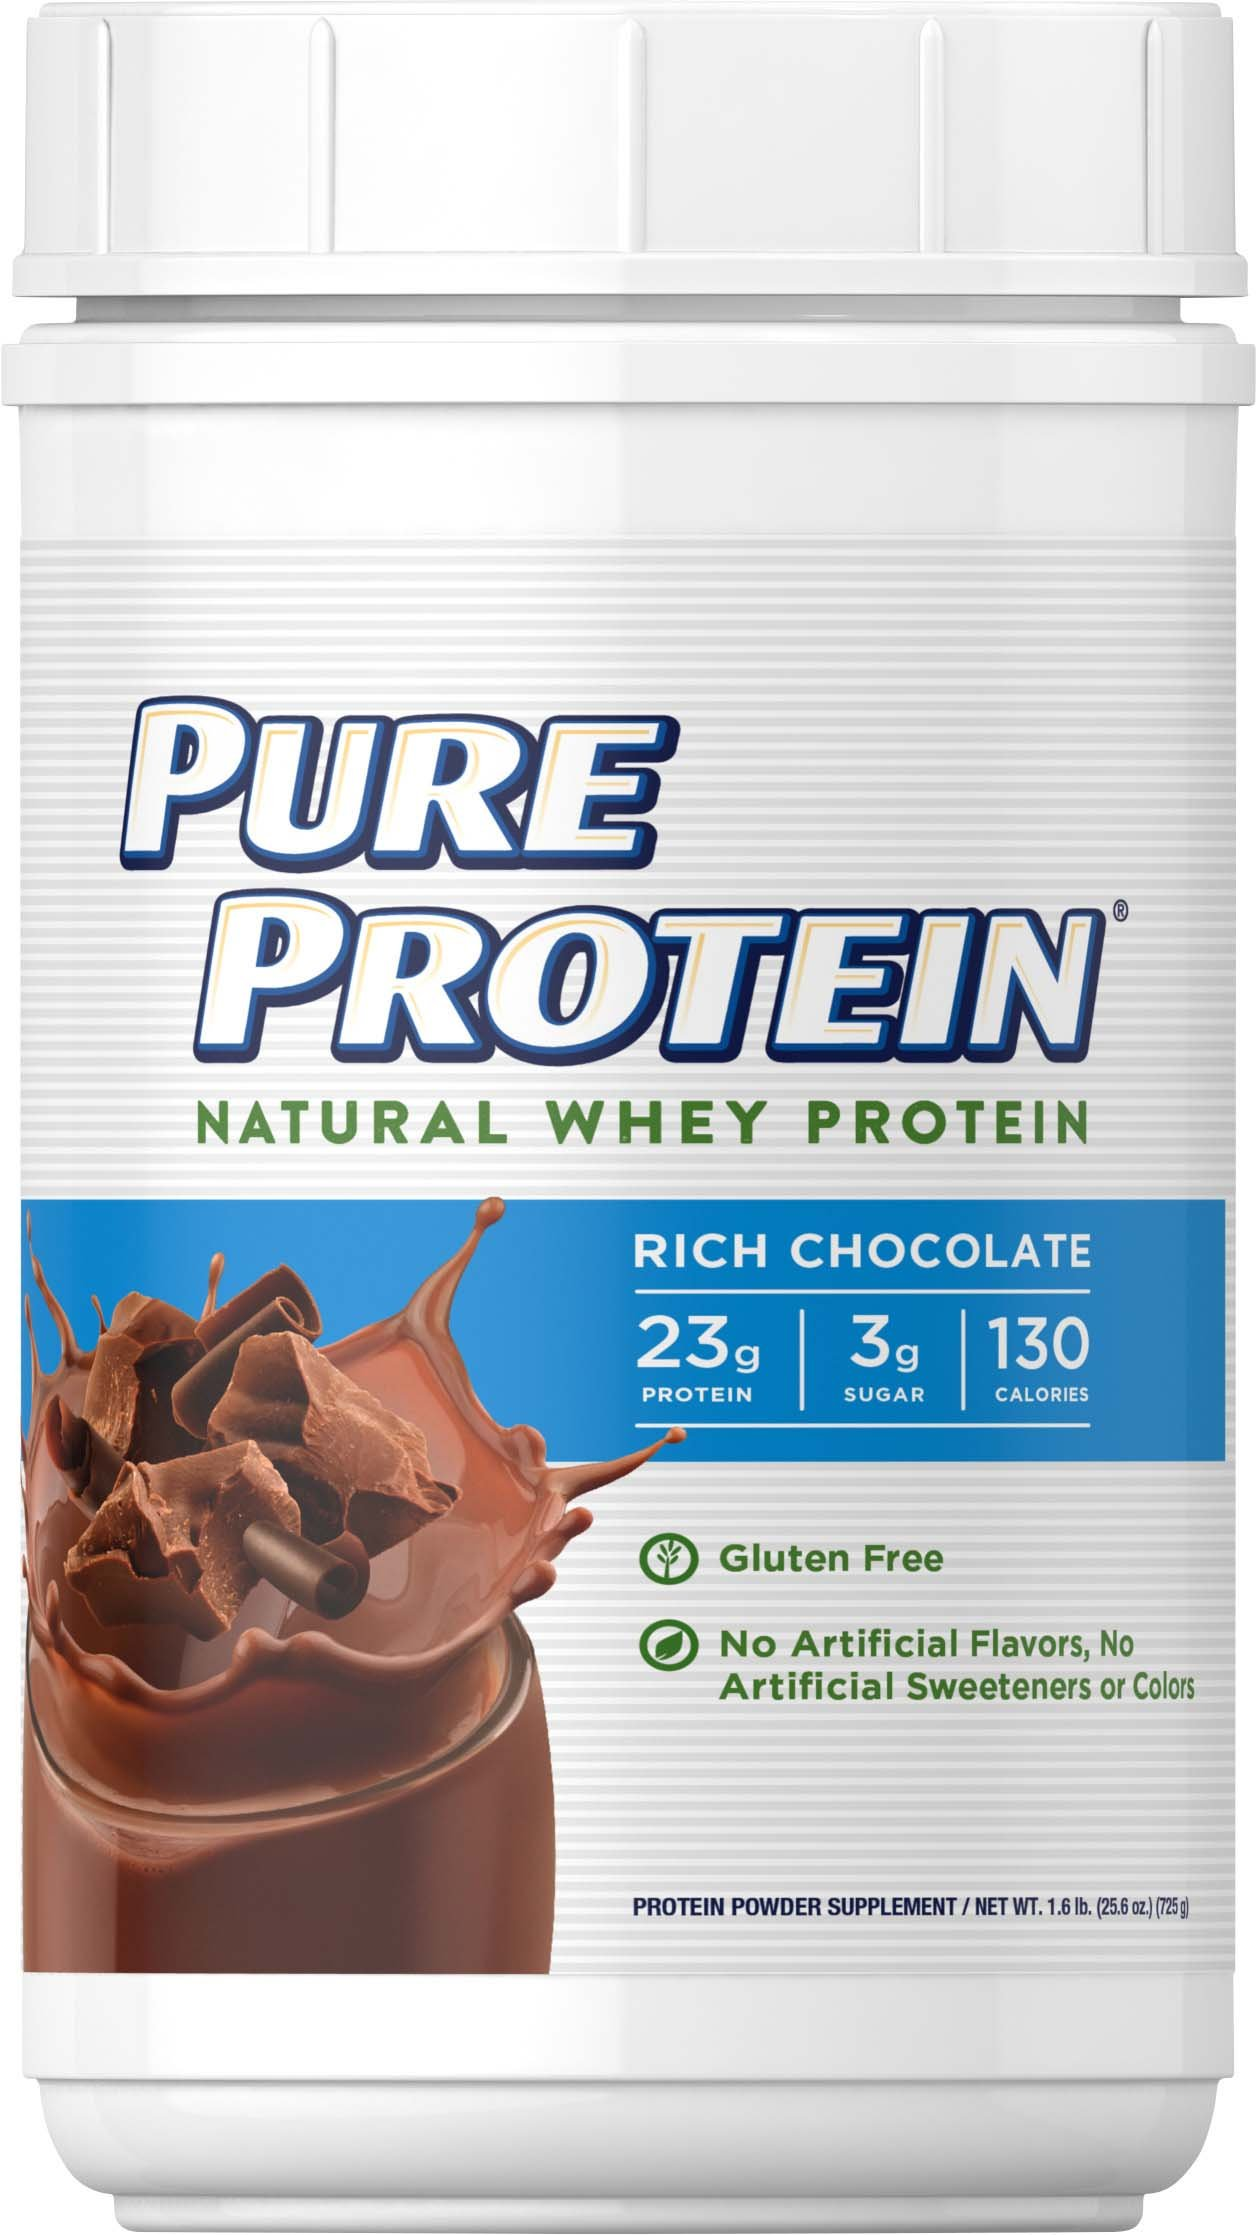 Pure Protein® Natural Whey Powder - Rich Chocolate, 1.6 pounds